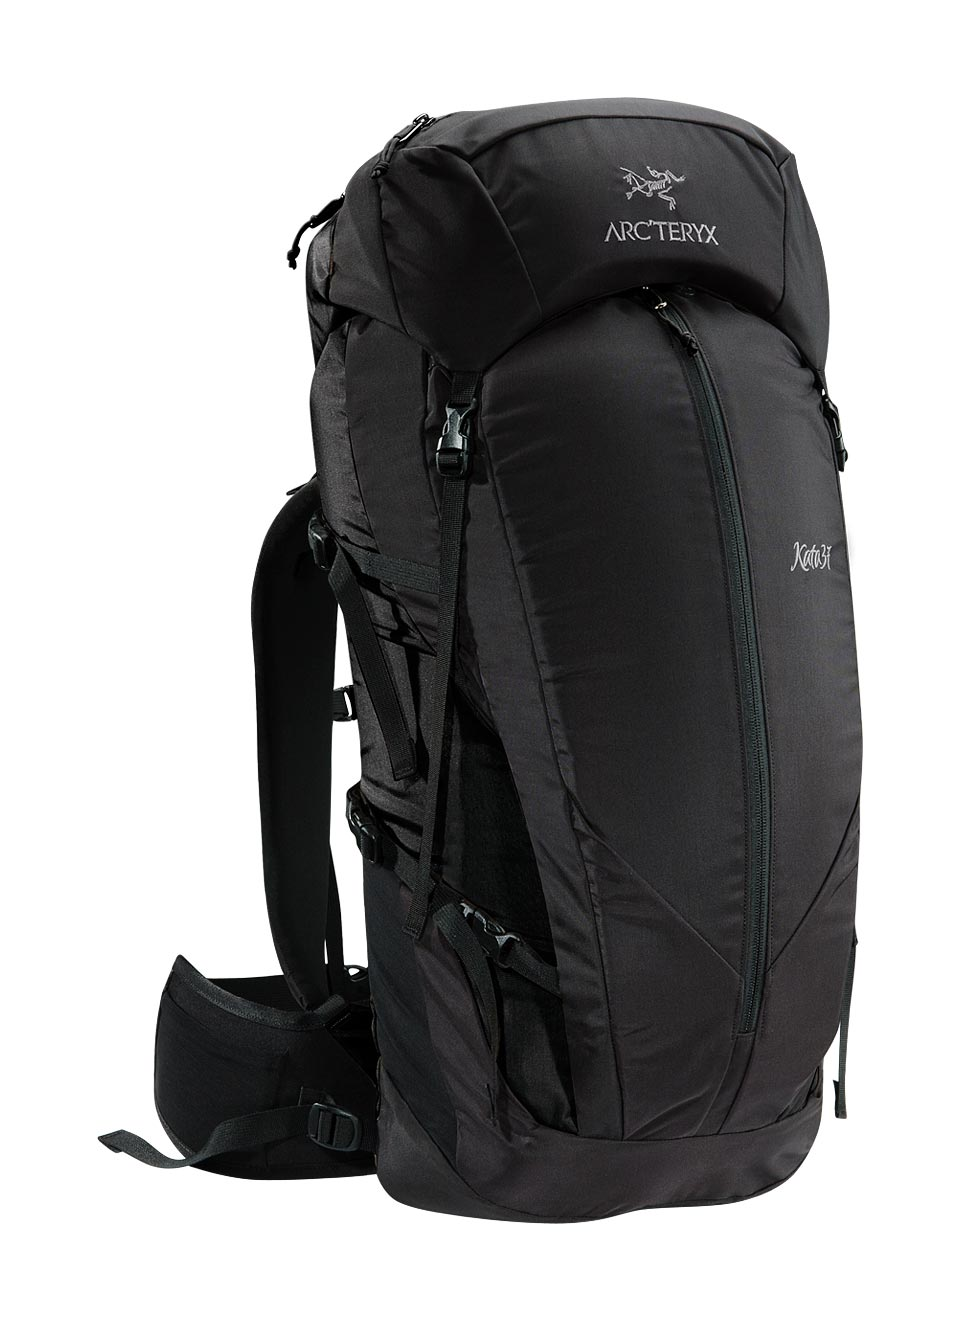 Arcteryx Black Kata 37 - New